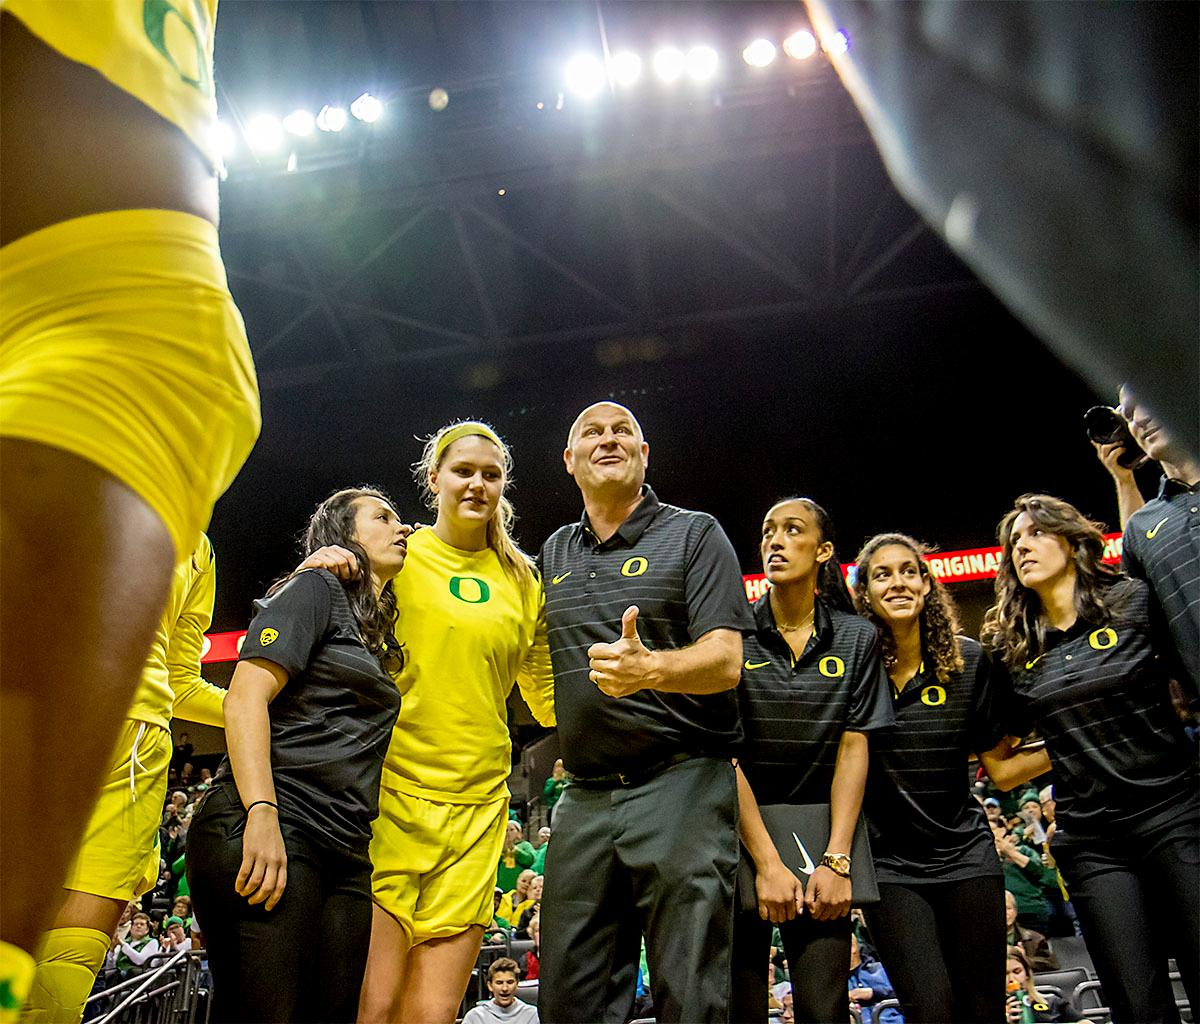 Oregon Ducks Head Coach Kelly Graves talks to his team before the start of the game. The Duck's Sabrina Ionescu (#20) is introduced at the start of the game against the Ole Miss Rebels. The Oregon Ducks womens basketball team defeated the Ole Miss Rebels 90-46 on Sunday at Matthew Knight Arena. Sabrina Ionescu tied the NCAA record for triple-doubles, finishing the game with 21 points, 14 assists, and 11 rebounds. Ruthy Hebard added 16 points, Satou Sabally added 12, and both Lexi Bando and Maite Cazorla scored 10 each. The Ducks will next face off against Texas A&M on Thursday Dec. 21 and Hawaii on Friday Dec. 22 in Las Vegas for Duel in the Desert before the start of Pac-12 games. Photo by August Frank, Oregon News Lab